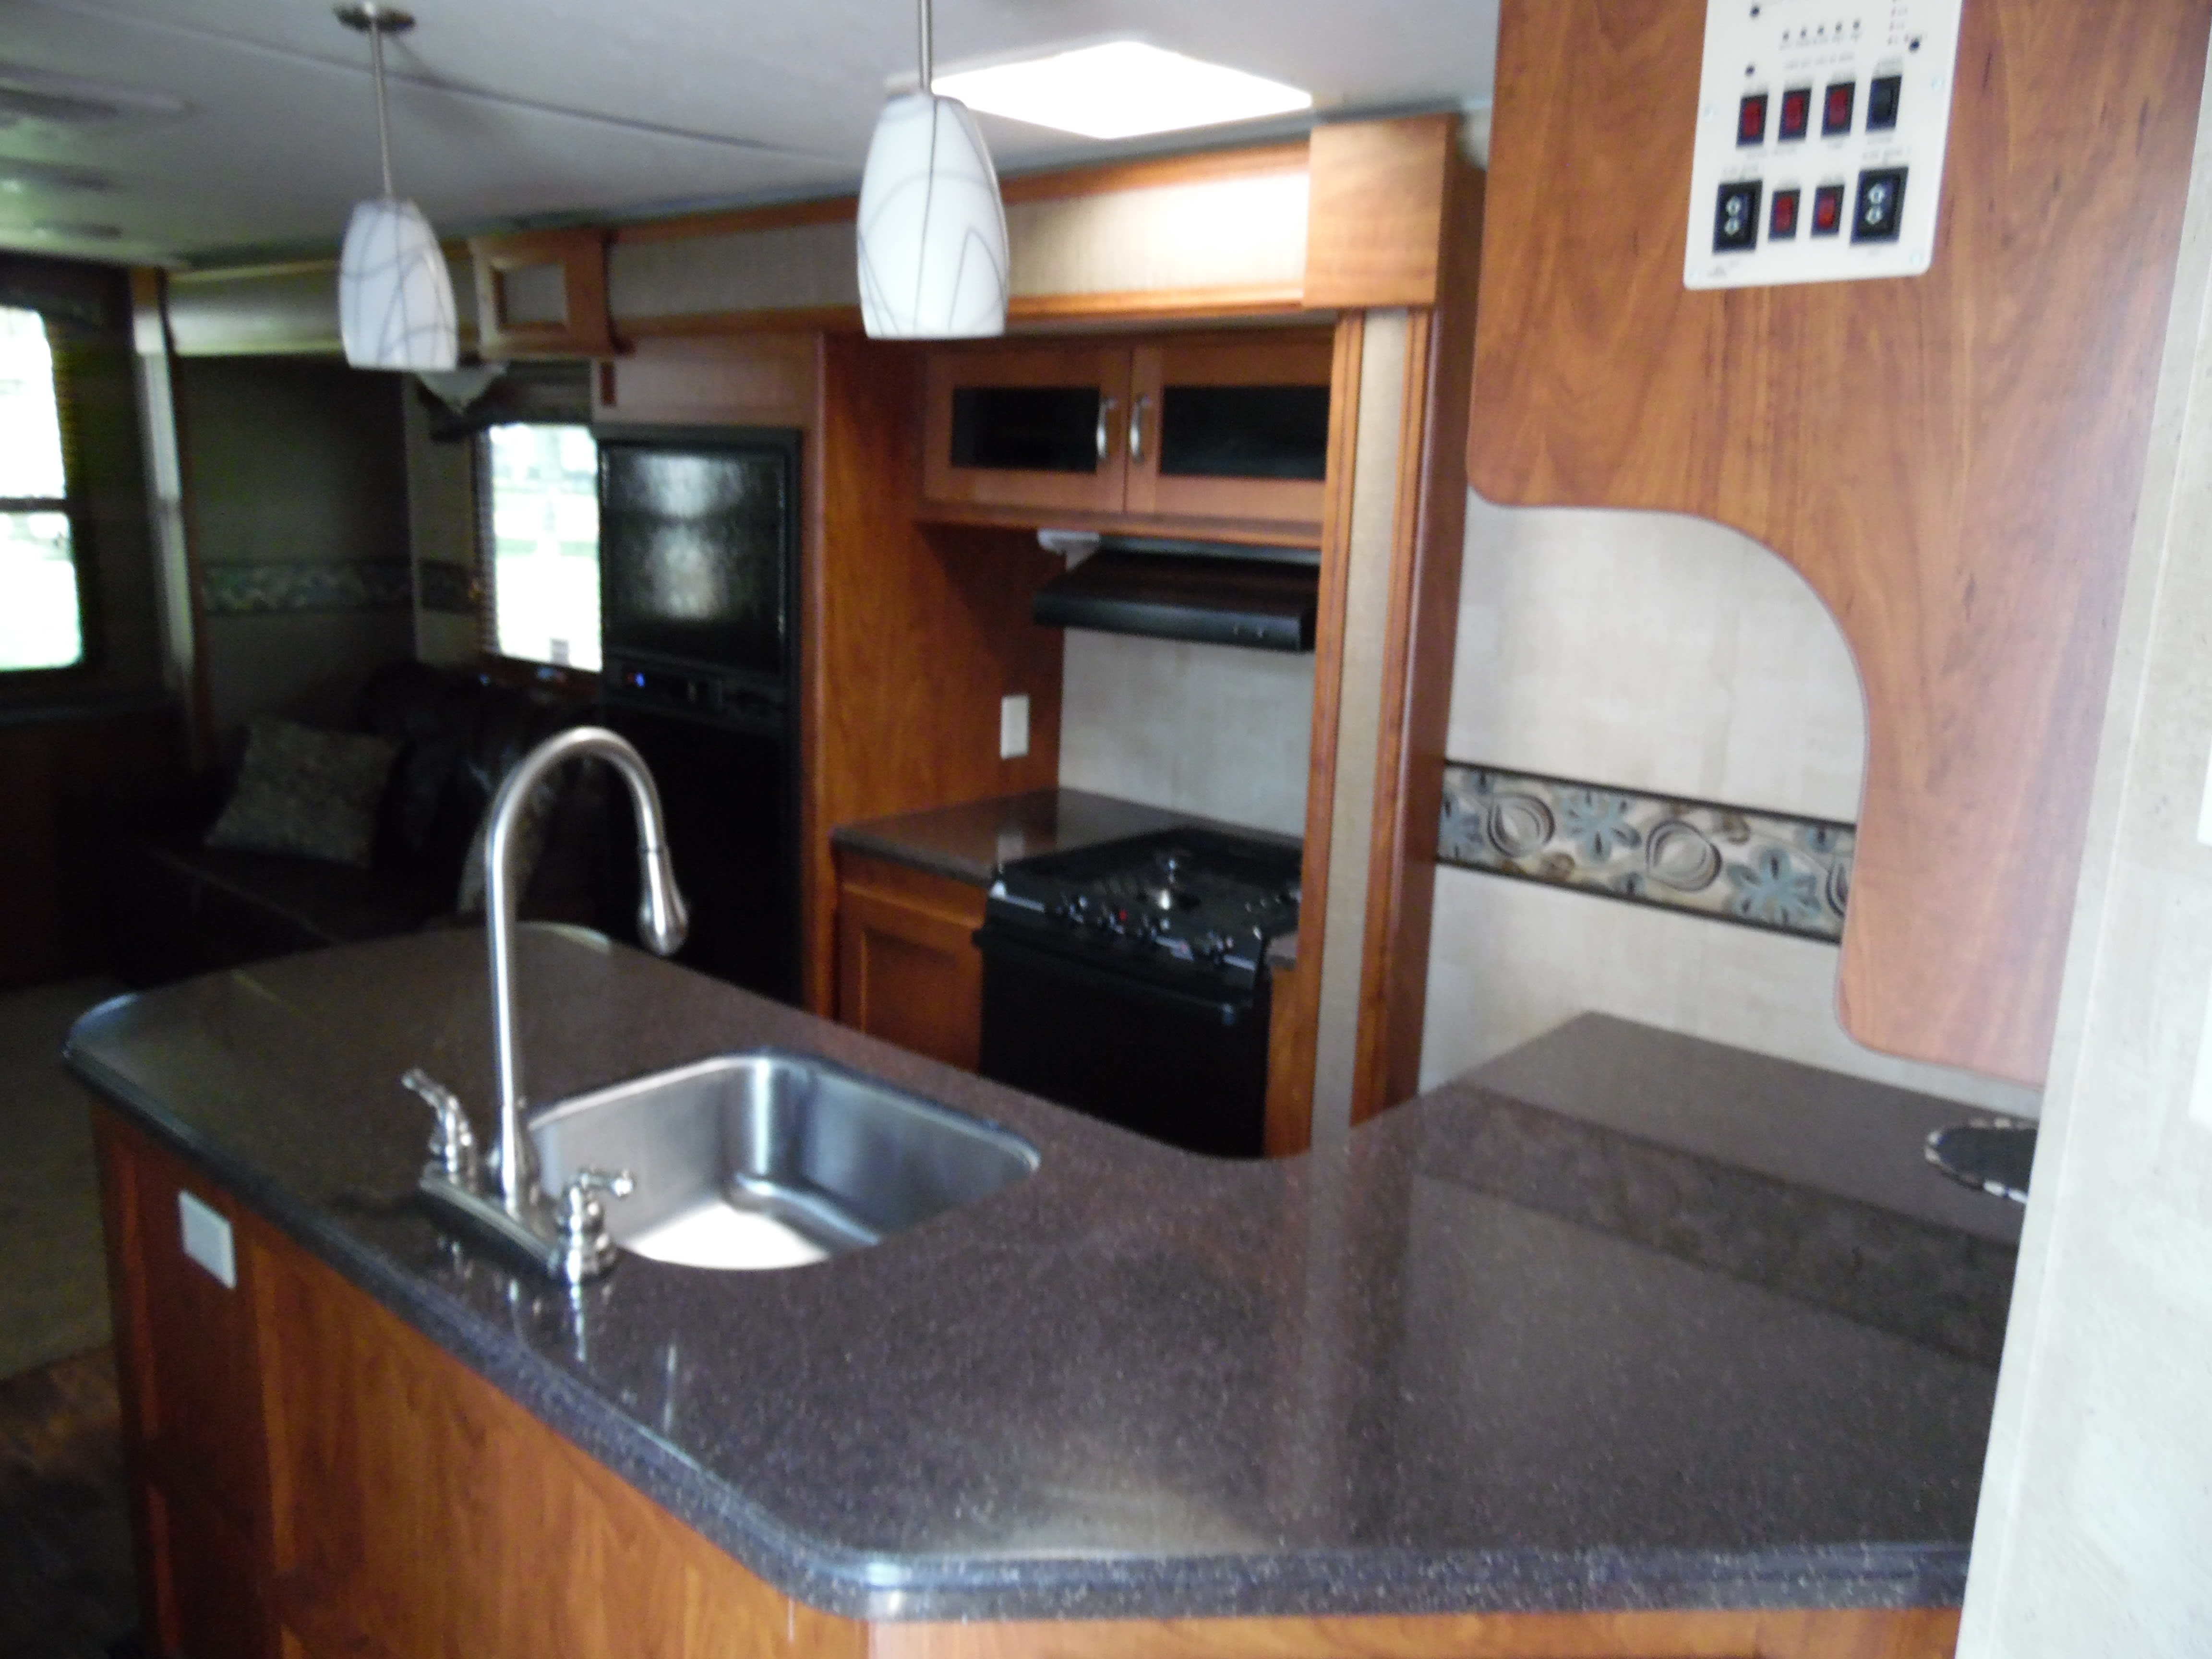 Corian countertop large basin sink pull out faucet with overhead bar lights. Keystone Passport Ultra Lite Elite 2014